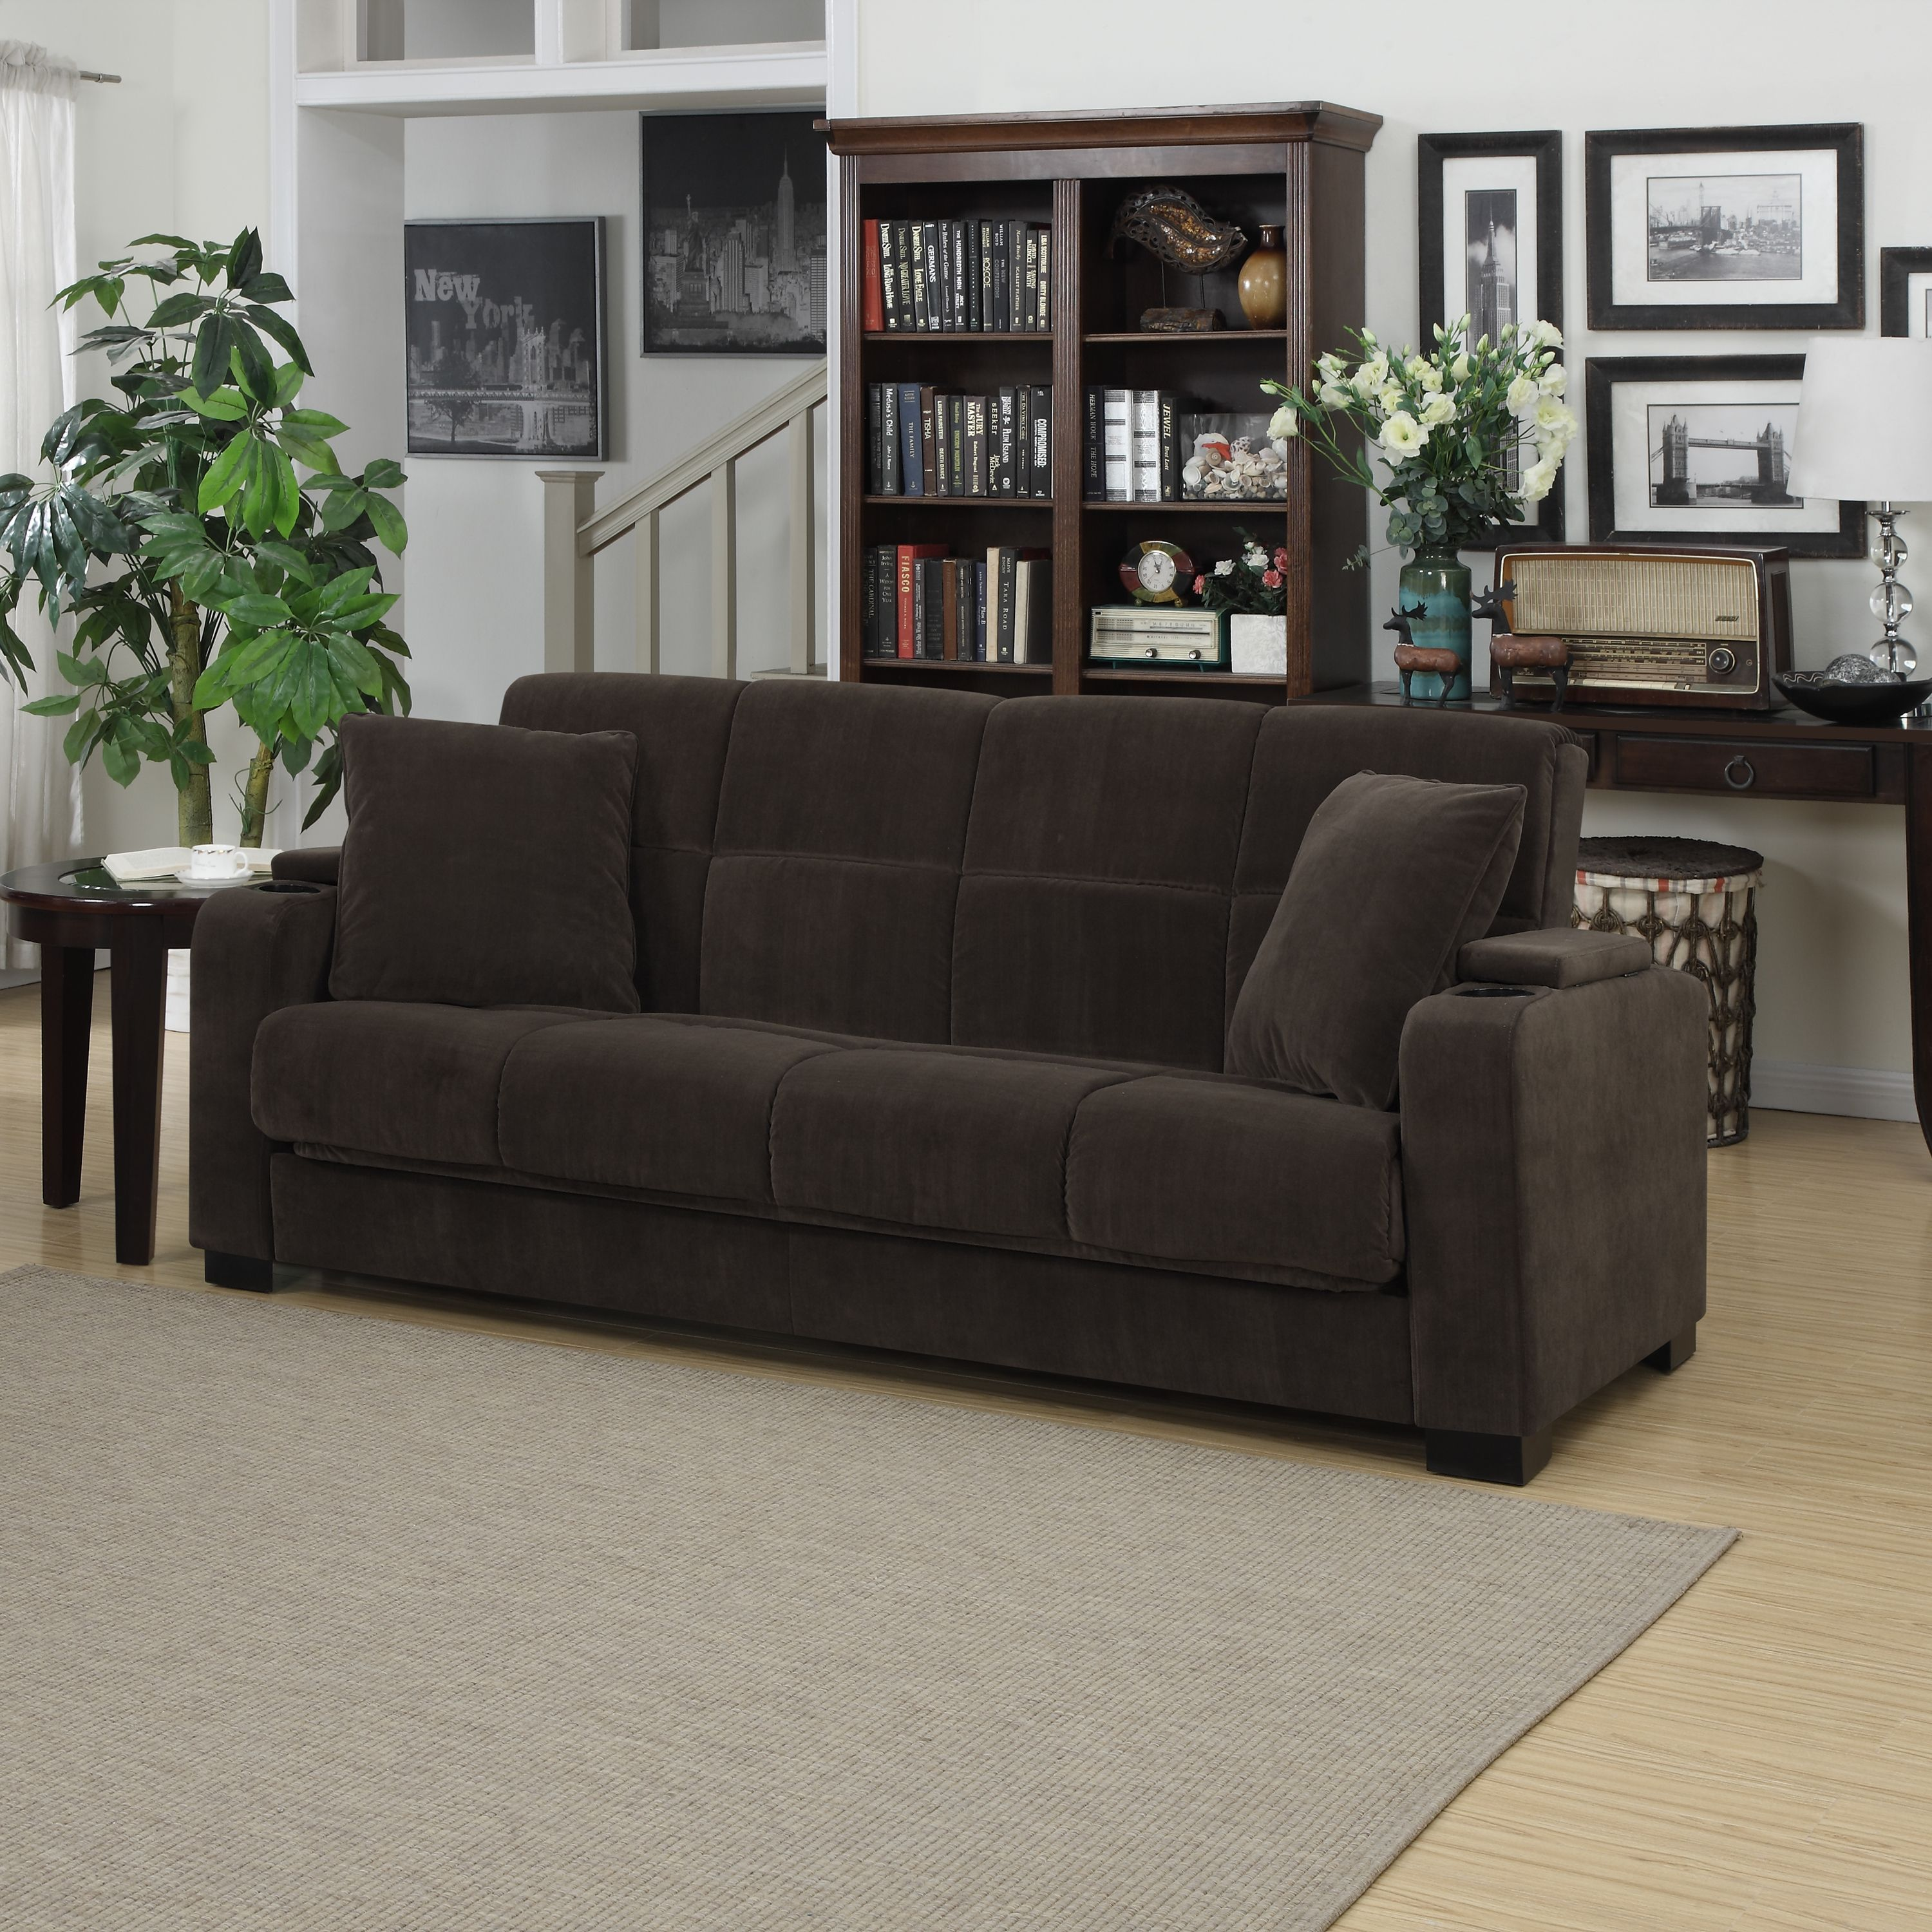 Clay Alder Home Klingle Chocolate Brown Velvet Convert A Couch